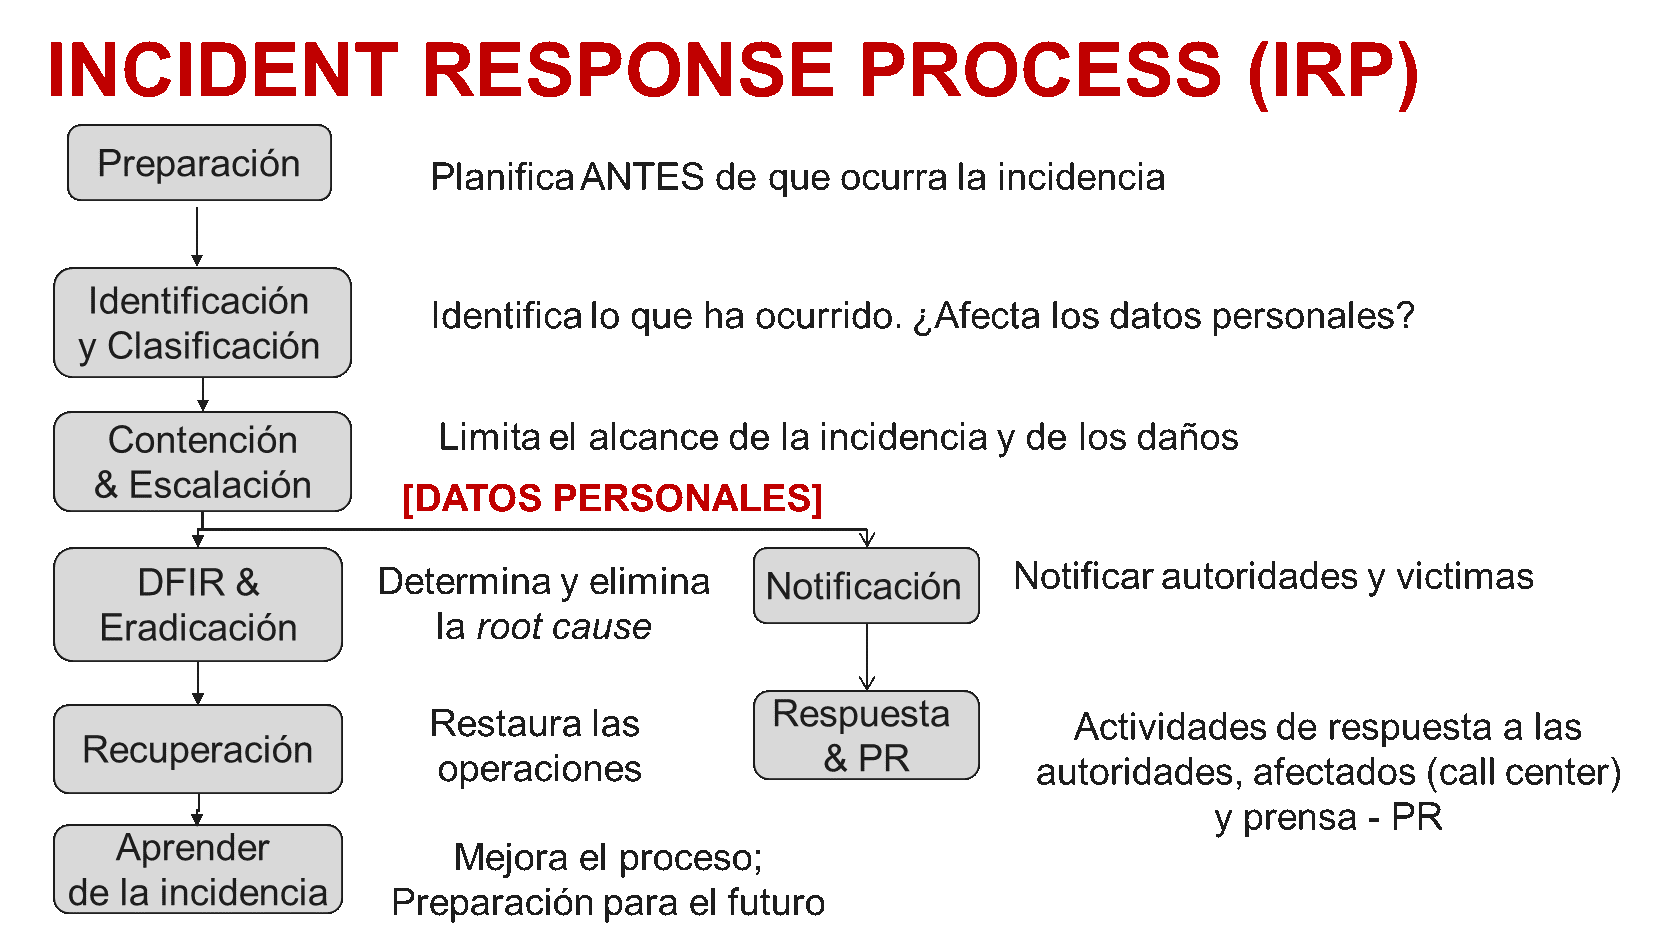 IRP Incident Response Process